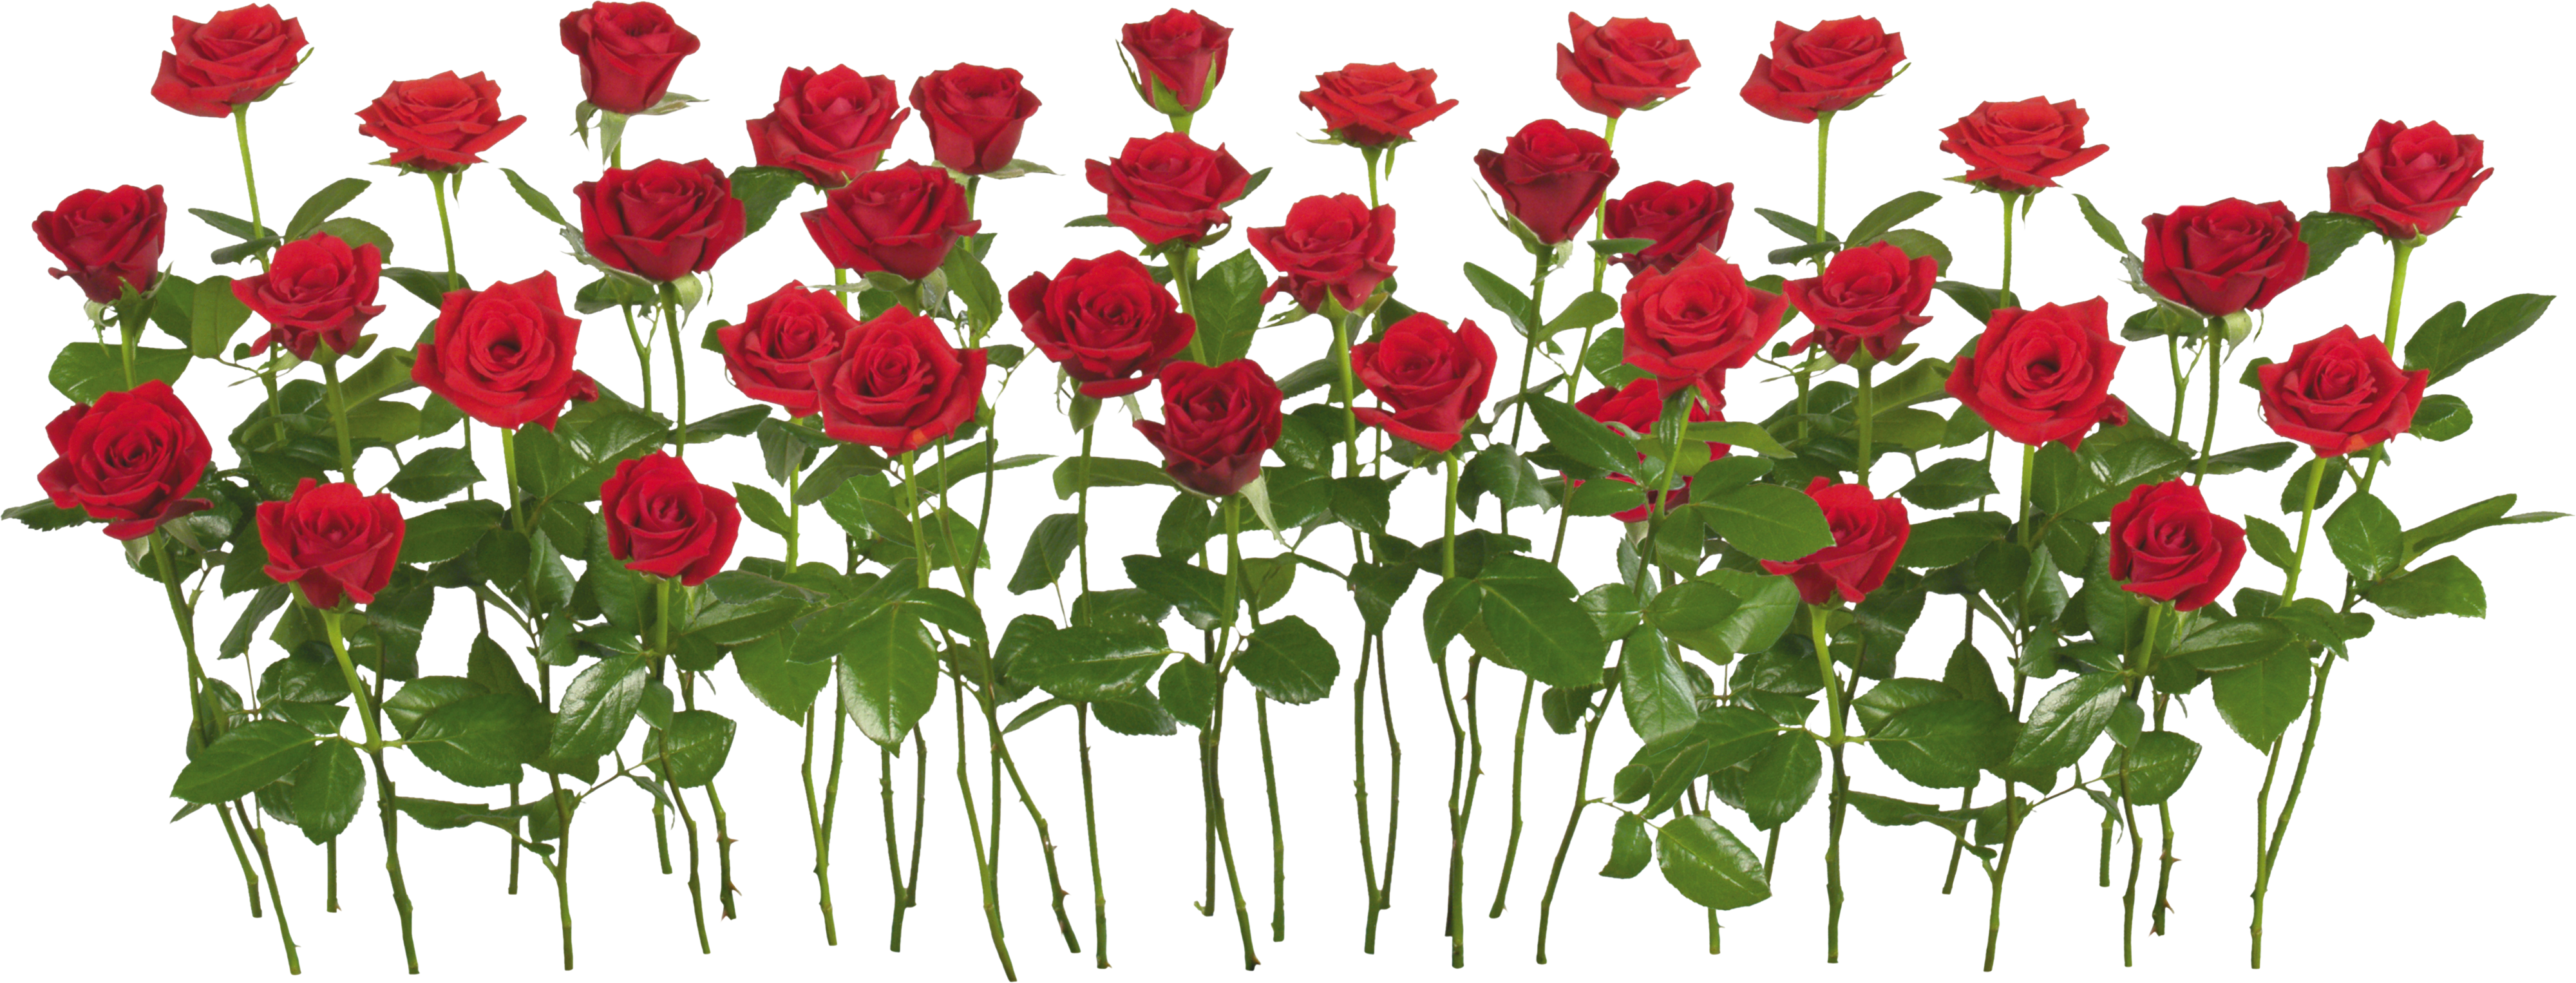 Green flower bed clipart png banner free Rose PNG flower images, free download banner free